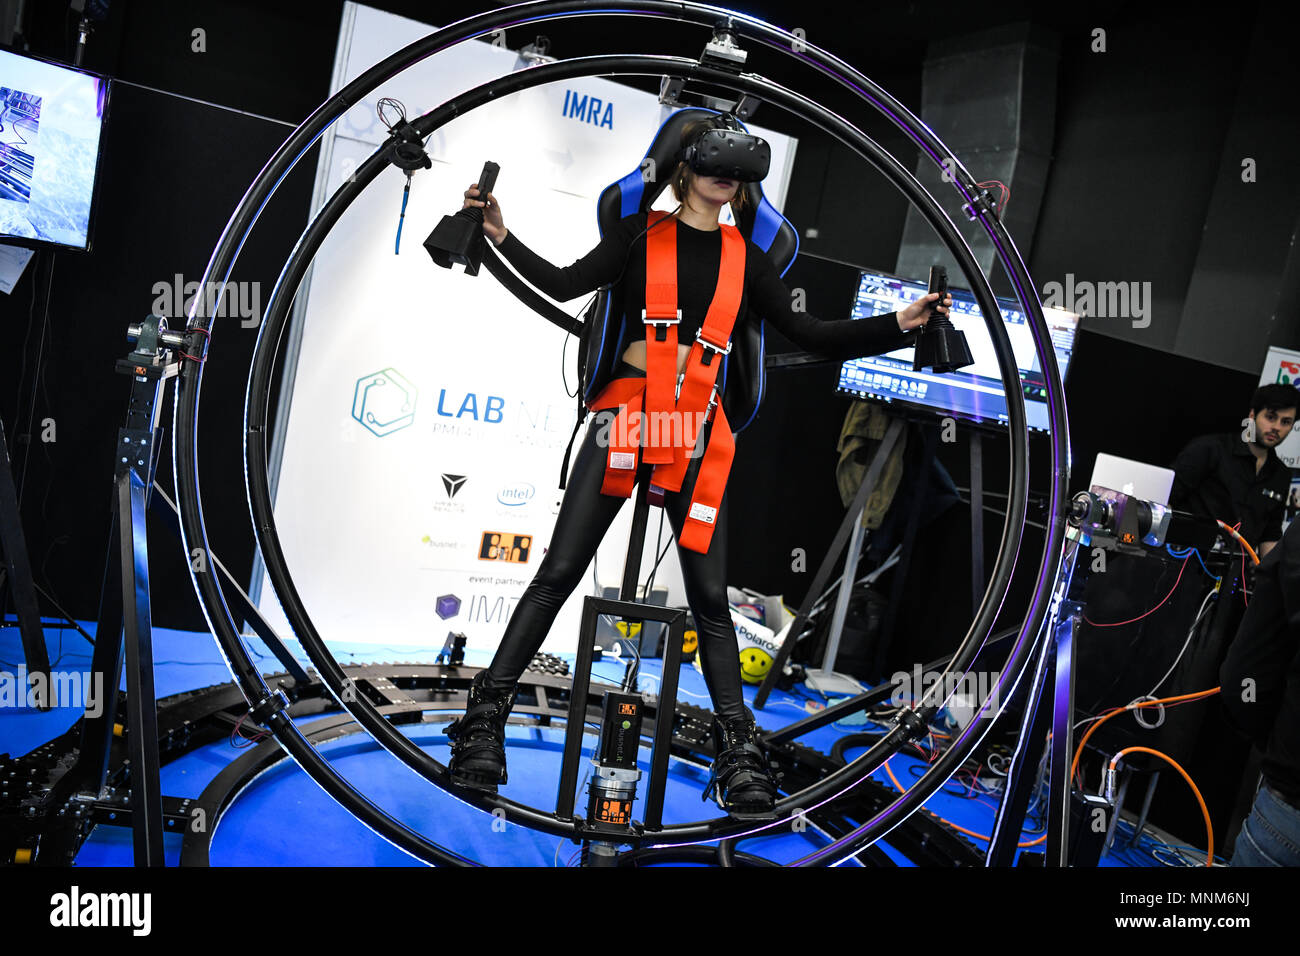 Milan, Italy - 17 May 2018: A woman tries VITRUVIAN VR, a gyroscope Virtual Reality simulator,  on display during the Technology Hub 2018. - Stock Image